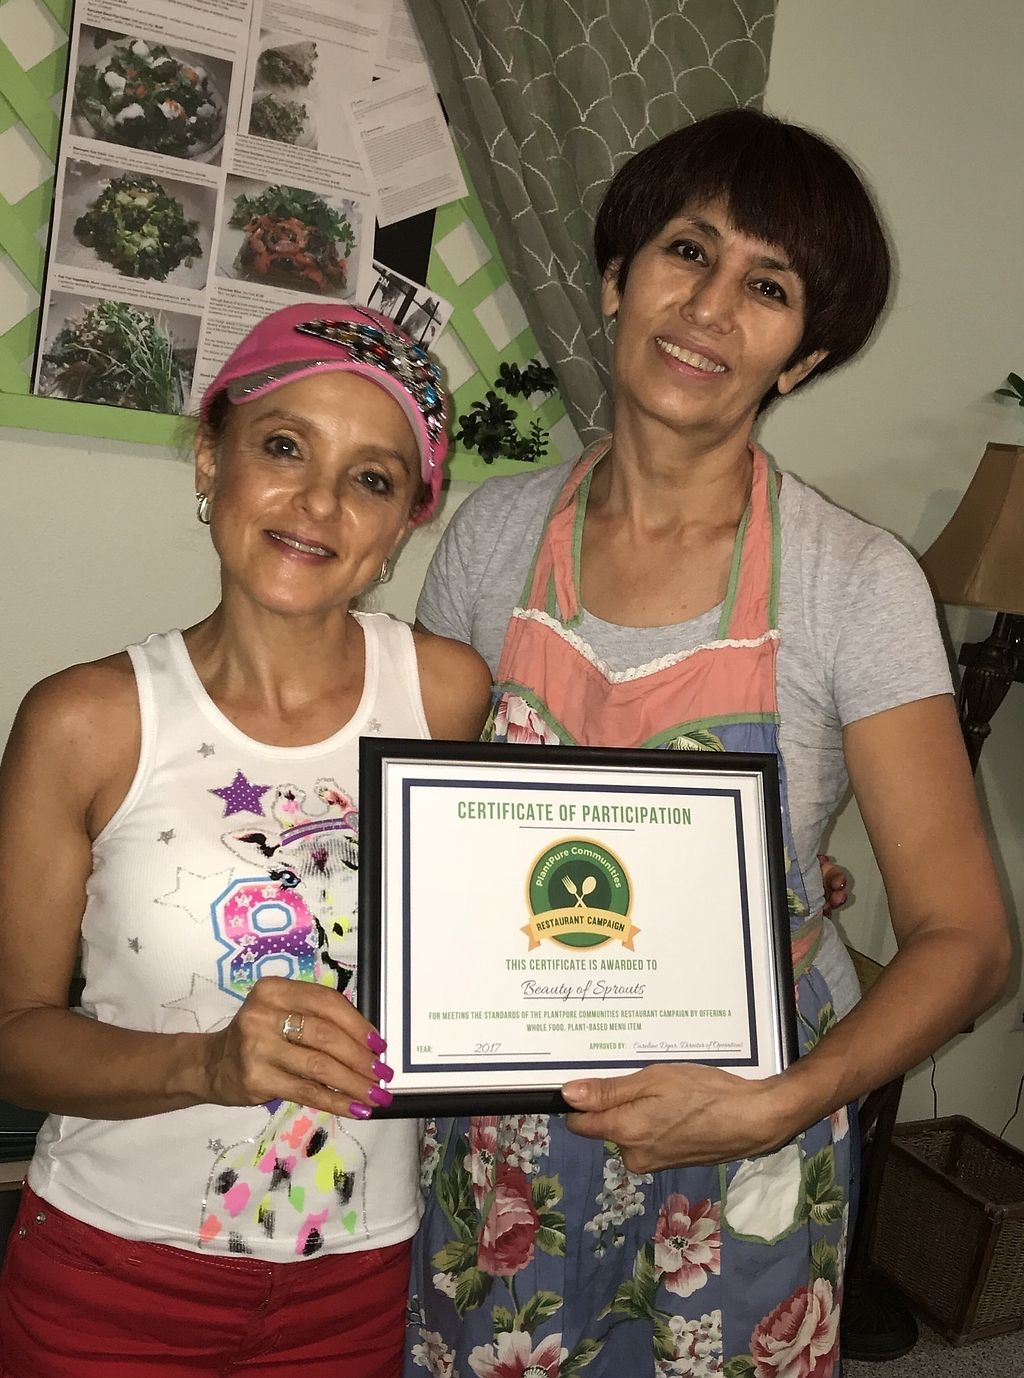 """Photo of Beauty of Sprouts  by <a href=""""/members/profile/BeGreenwithAmy"""">BeGreenwithAmy</a> <br/>Beauty of Sprouts earned the Plant Pure Nation Restaurant Certificate for offering vegan menu items, oil free upon request! <br/> December 28, 2017  - <a href='/contact/abuse/image/46509/340075'>Report</a>"""